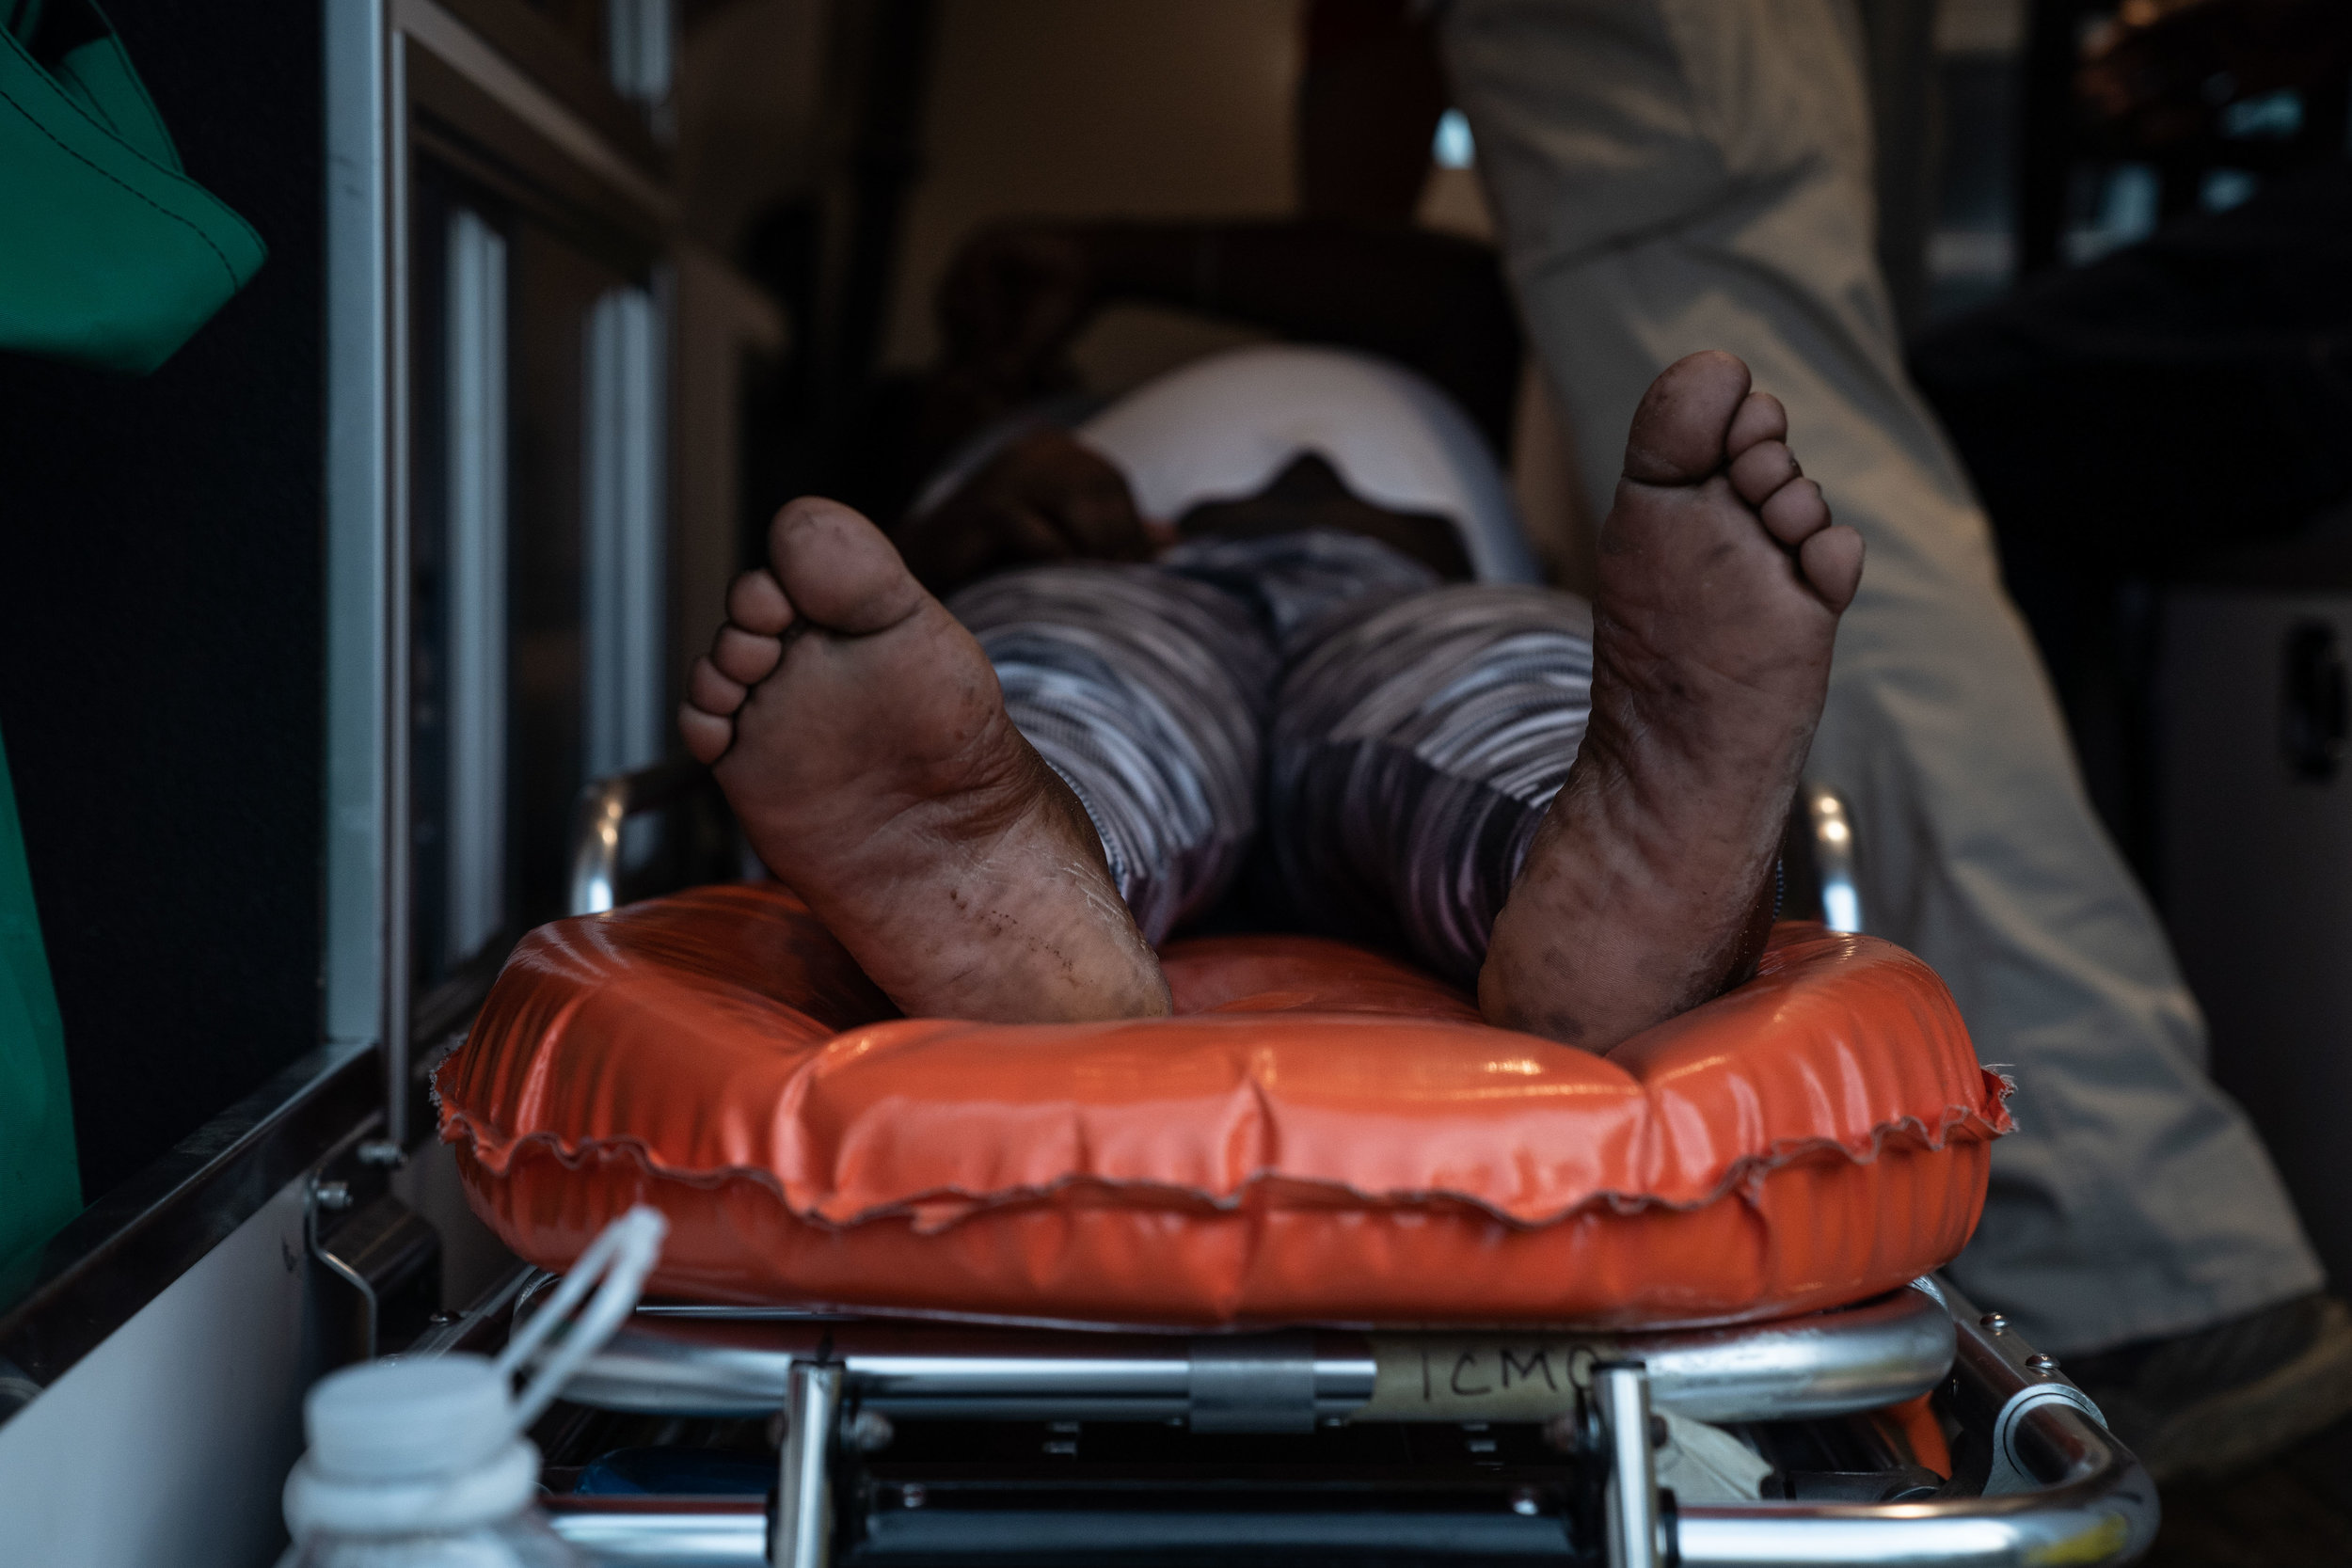 An African migrant in labor waits to be taken to a hospital in Tapachula, Mexico in June, 2019.